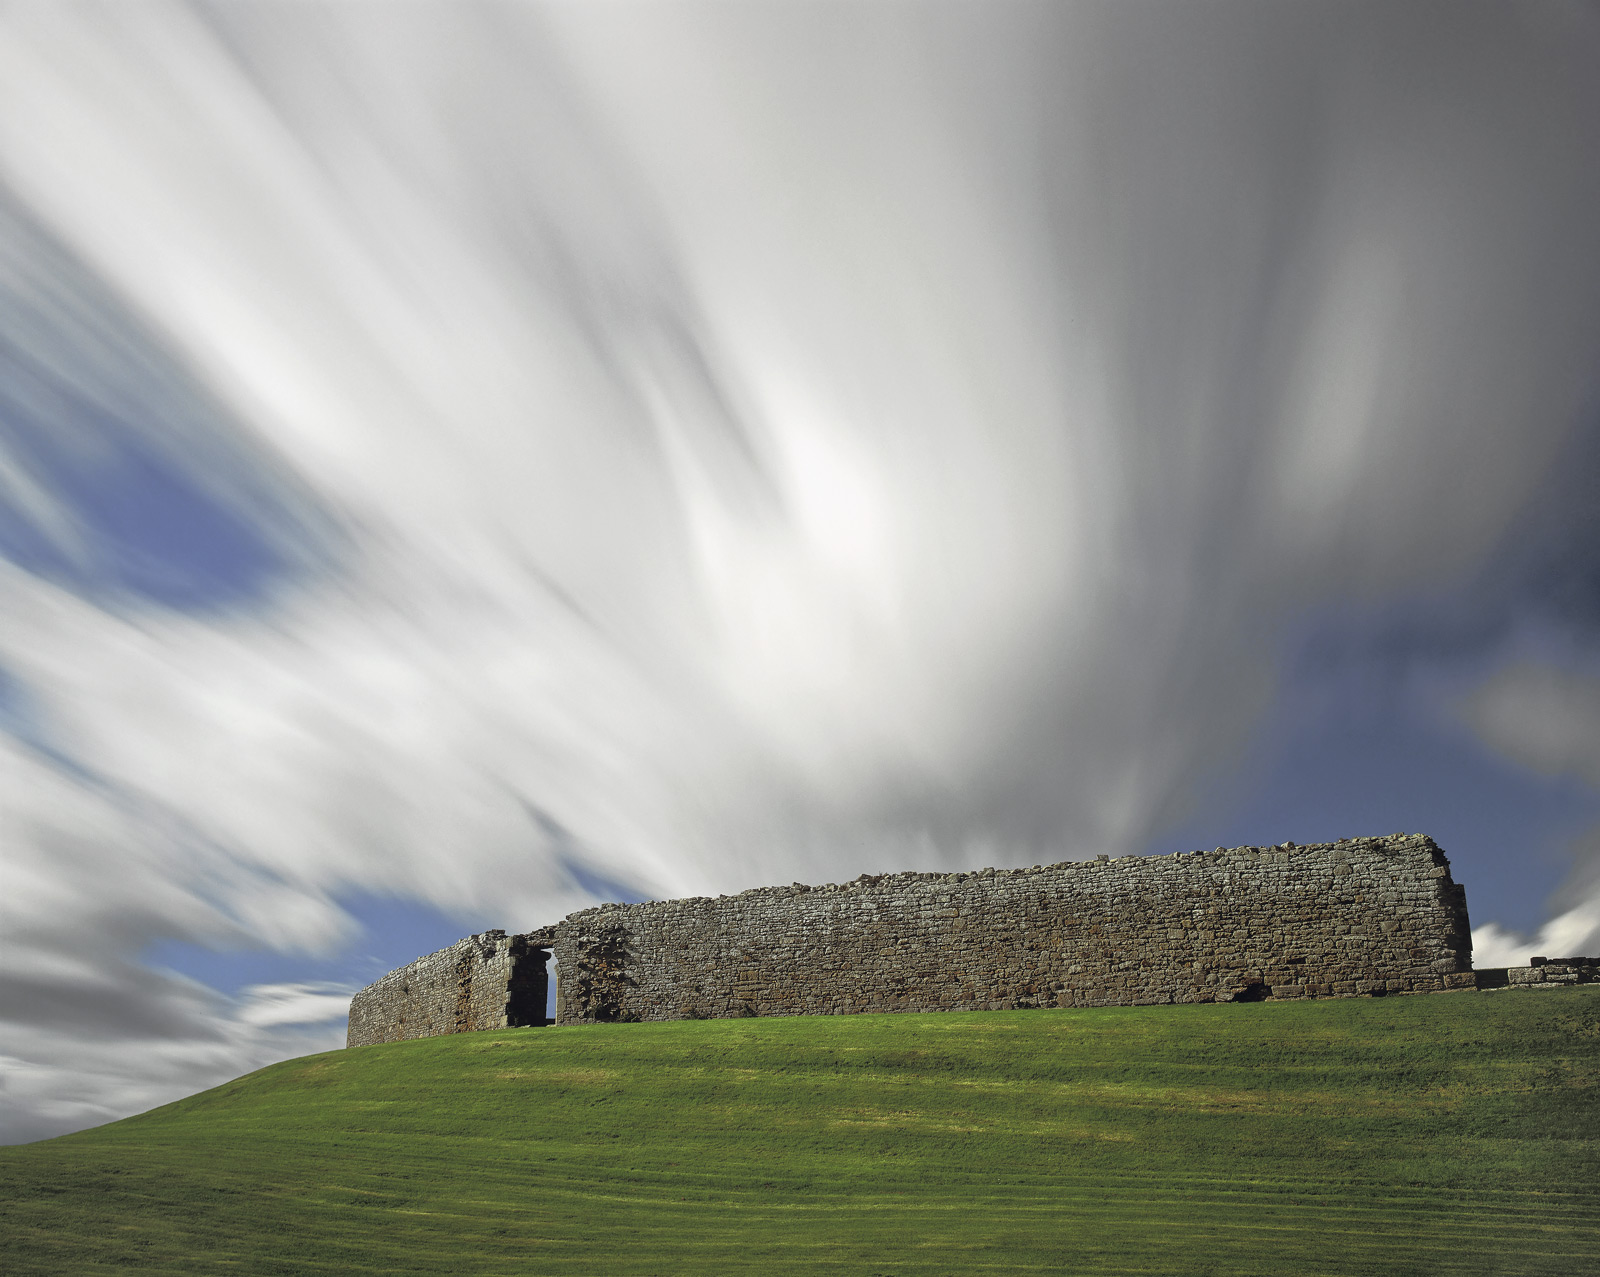 A fine breezy summer day at Duffus castle saw large white cumulus clouds scudding towards us over a sunlit castle wall mimicing...